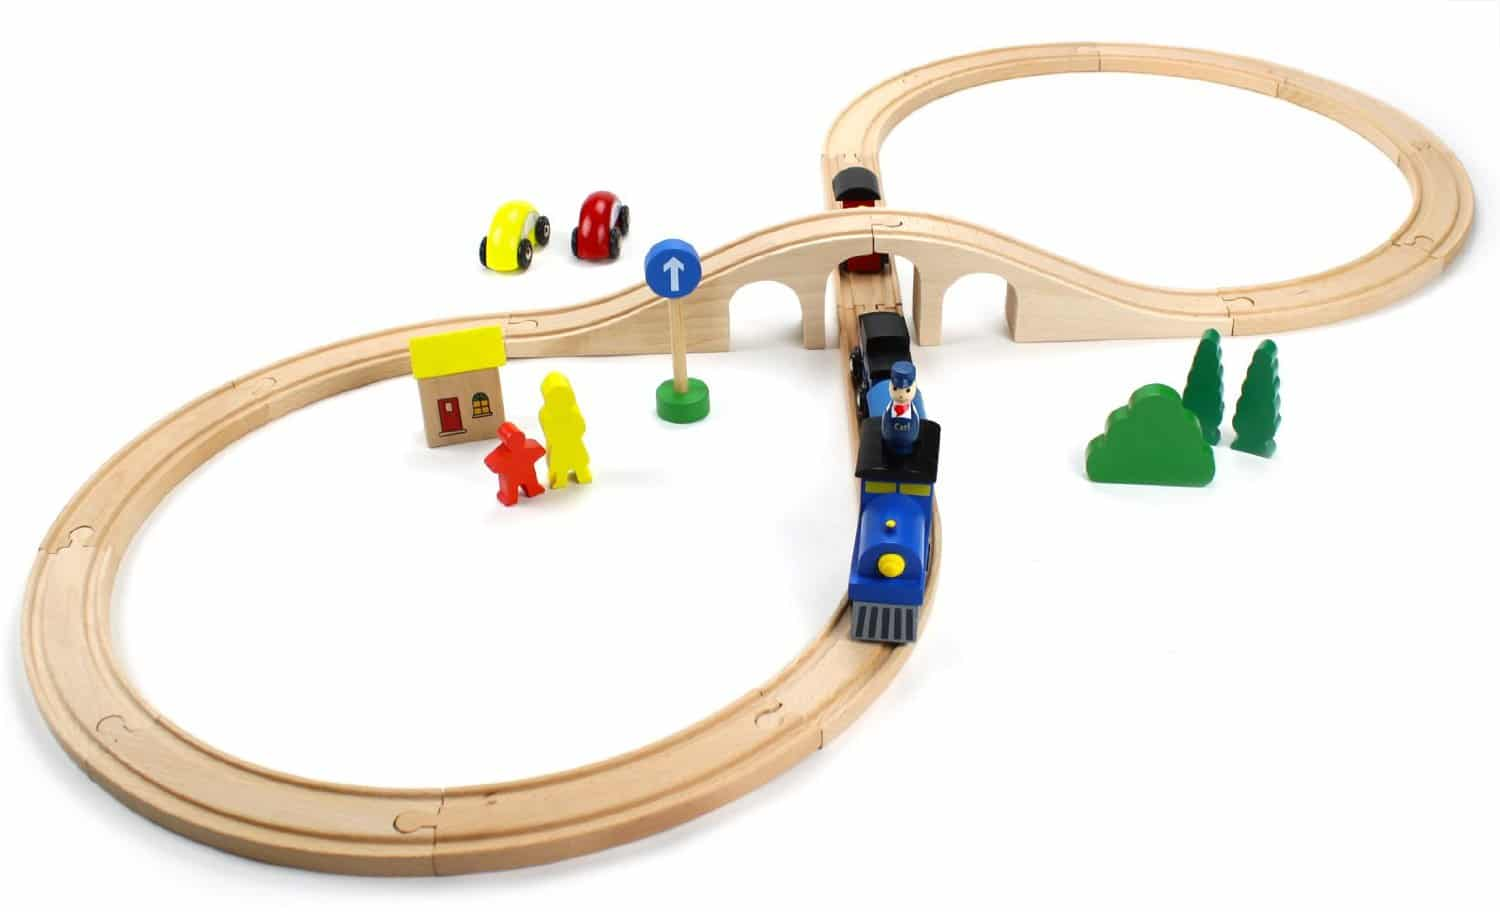 Wooden Train Tracks Classic Building Toys For Kids That Last